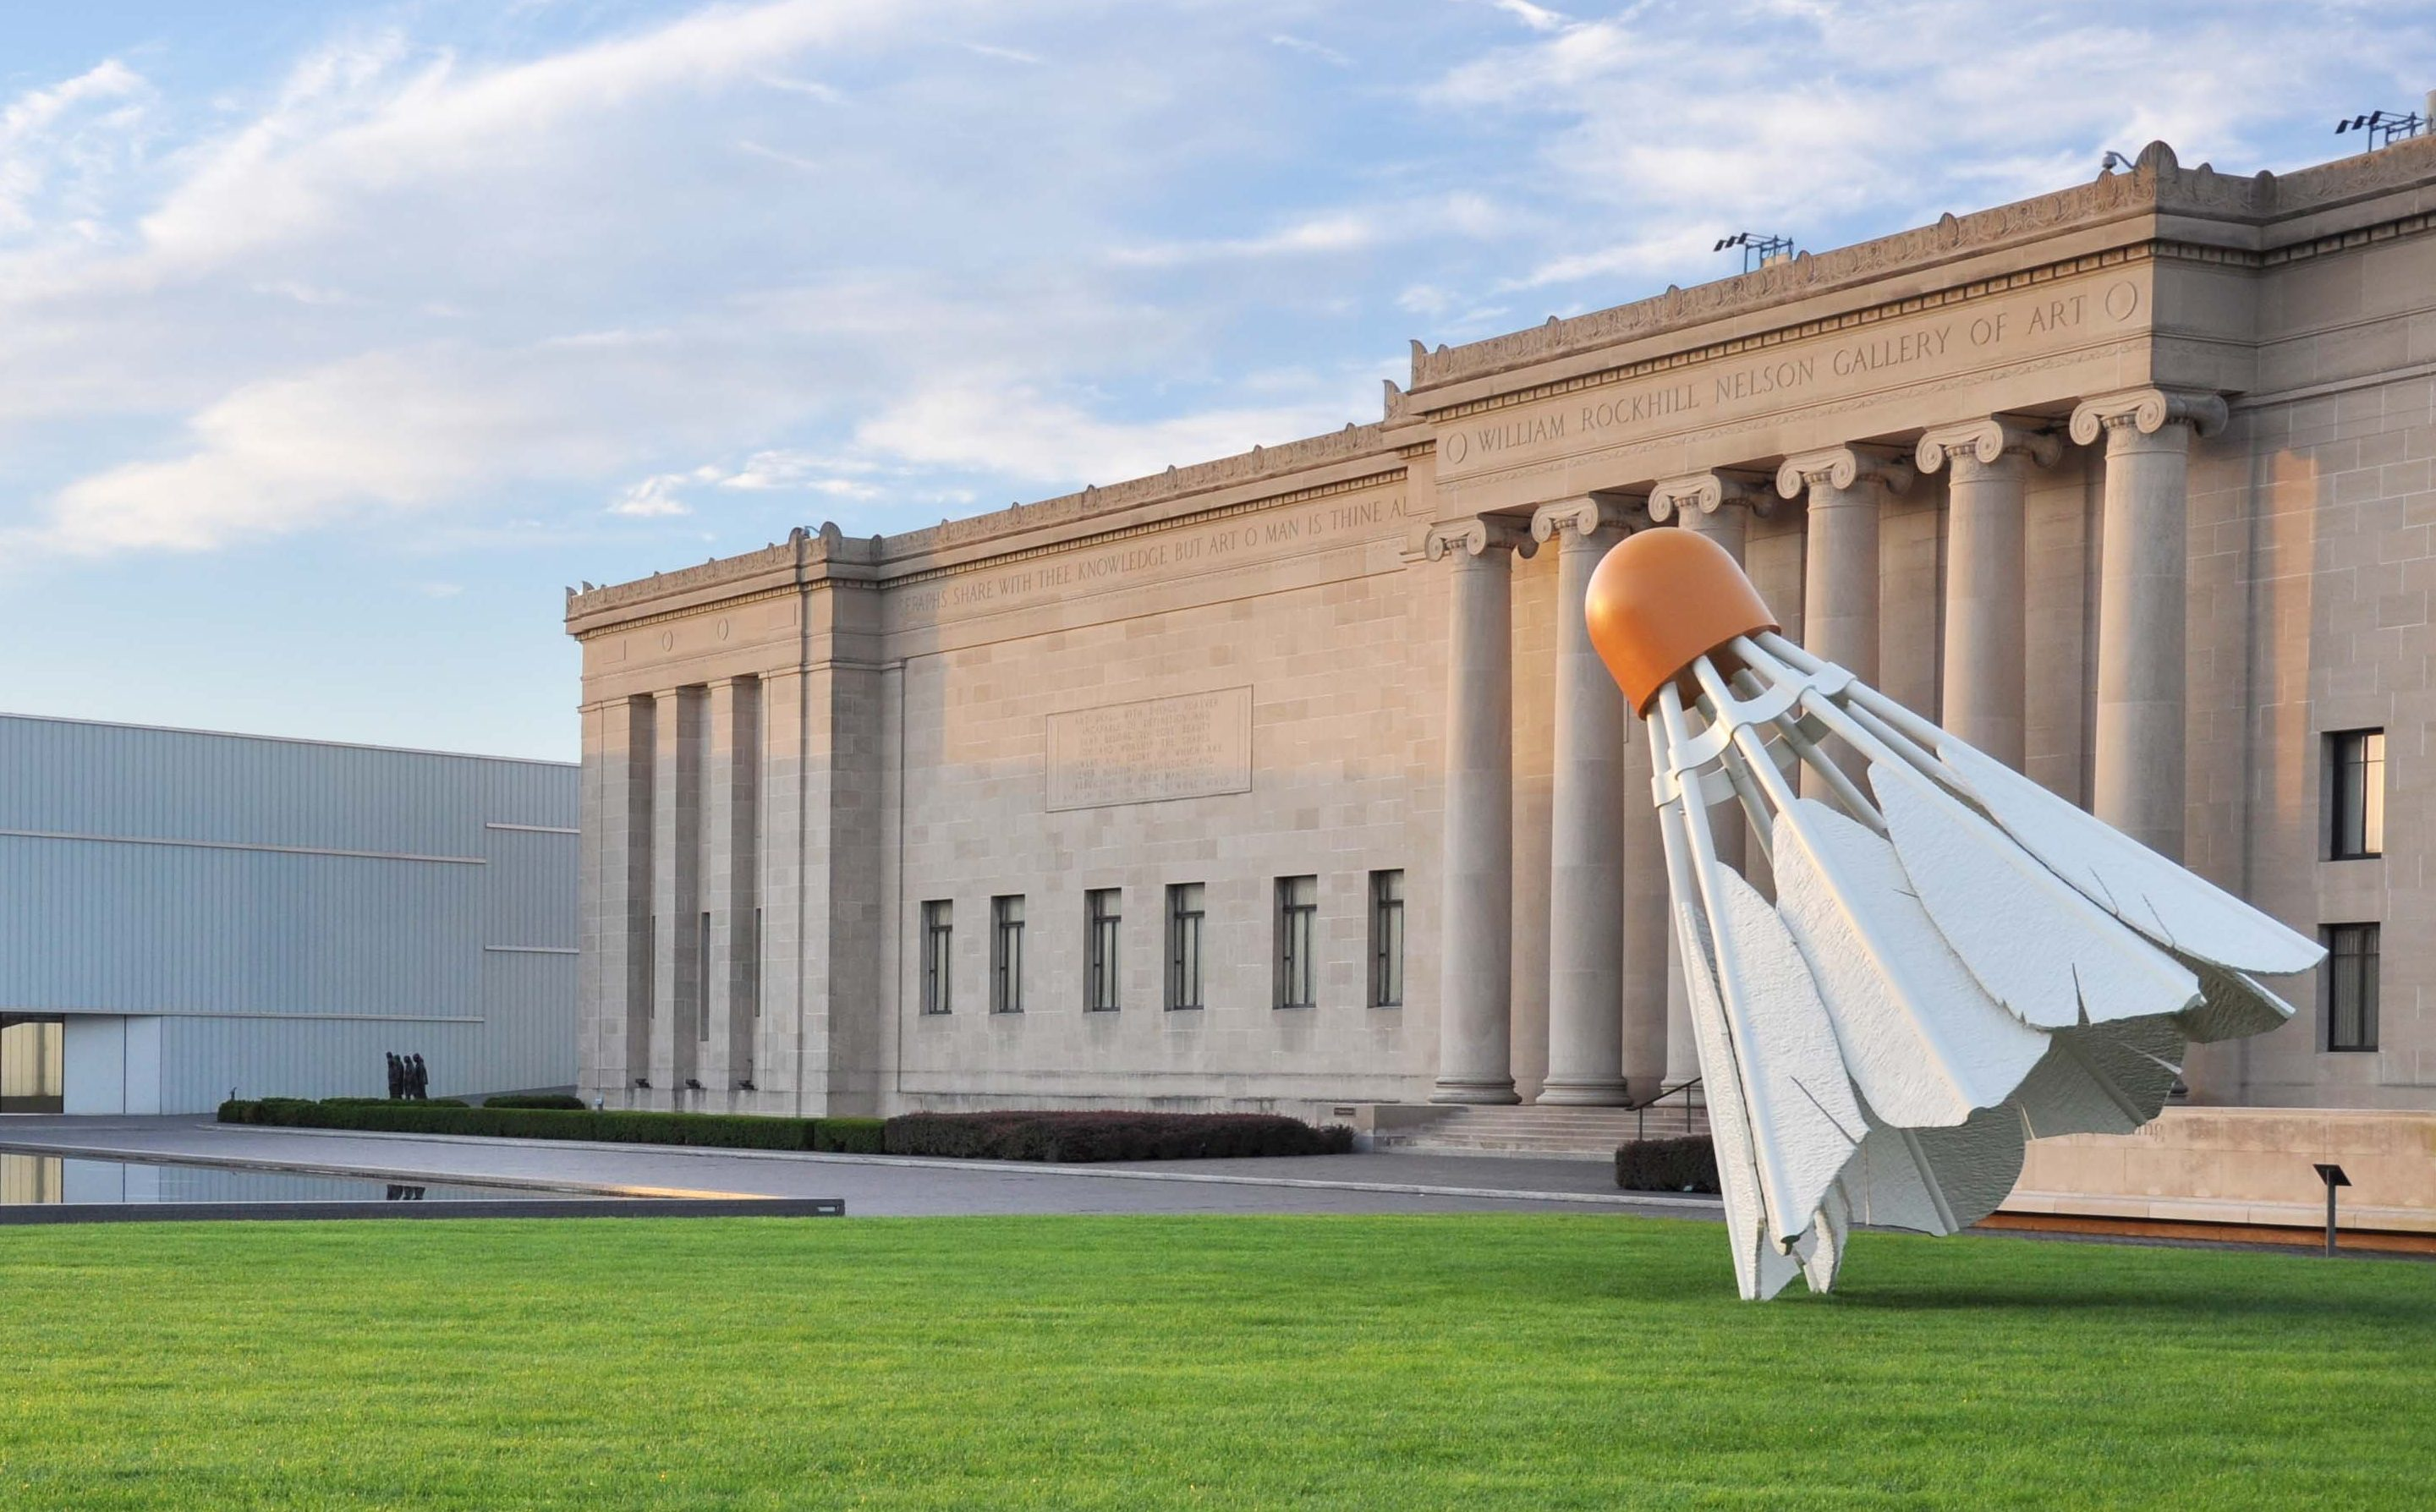 The Nelson-Atkins from the north with the Shuttlecock